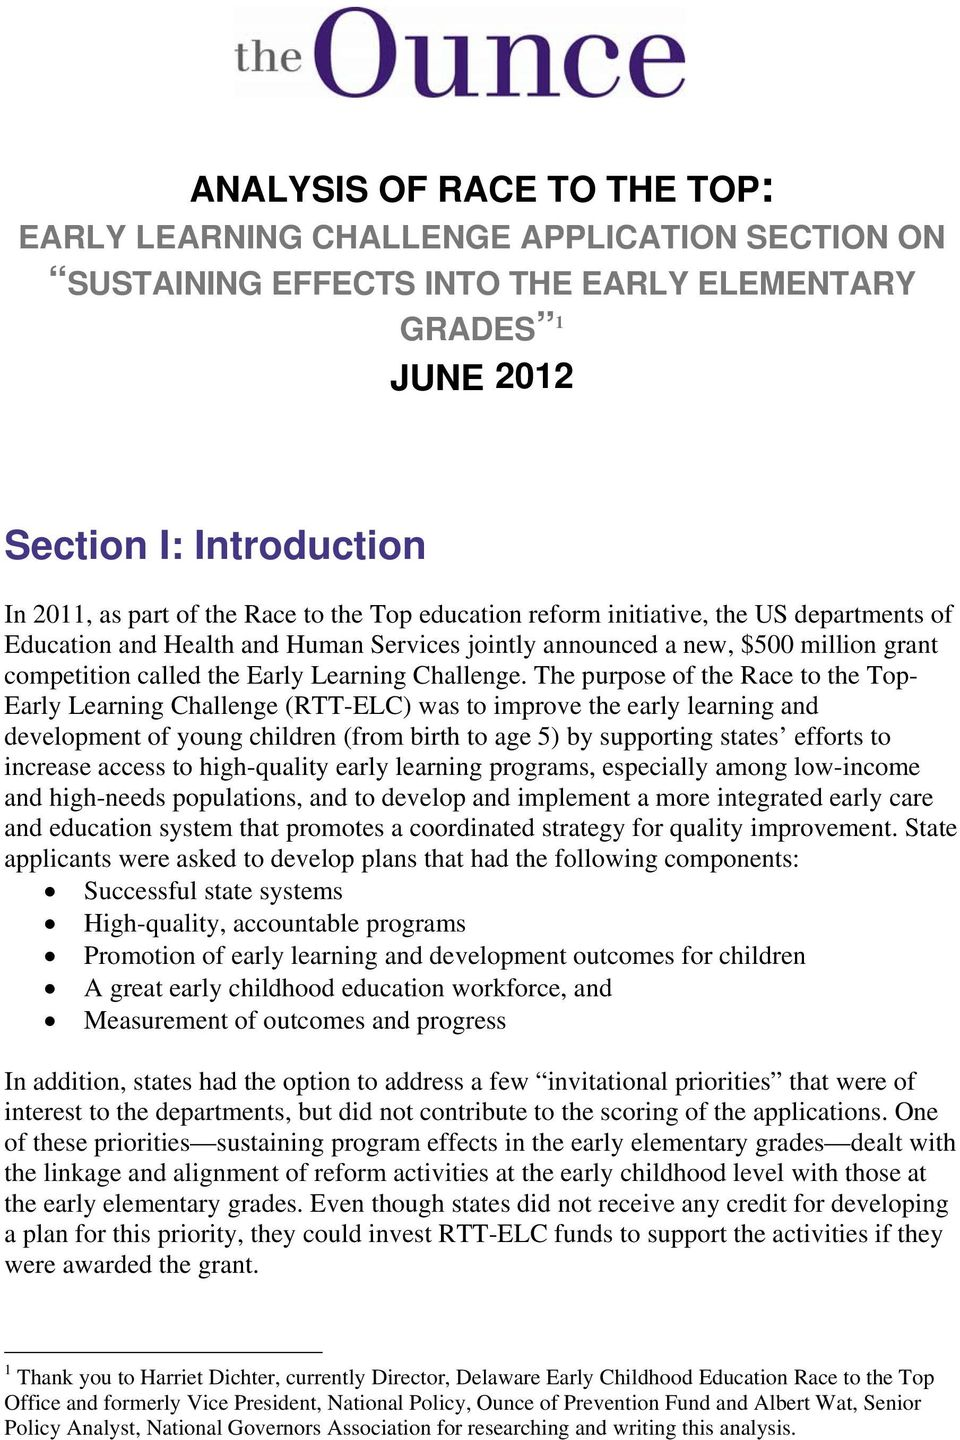 The purpose of the Race to the Top- Early Learning Challenge (RTT-ELC) was to improve the early learning and development of young children (from birth to age 5) by supporting states efforts to